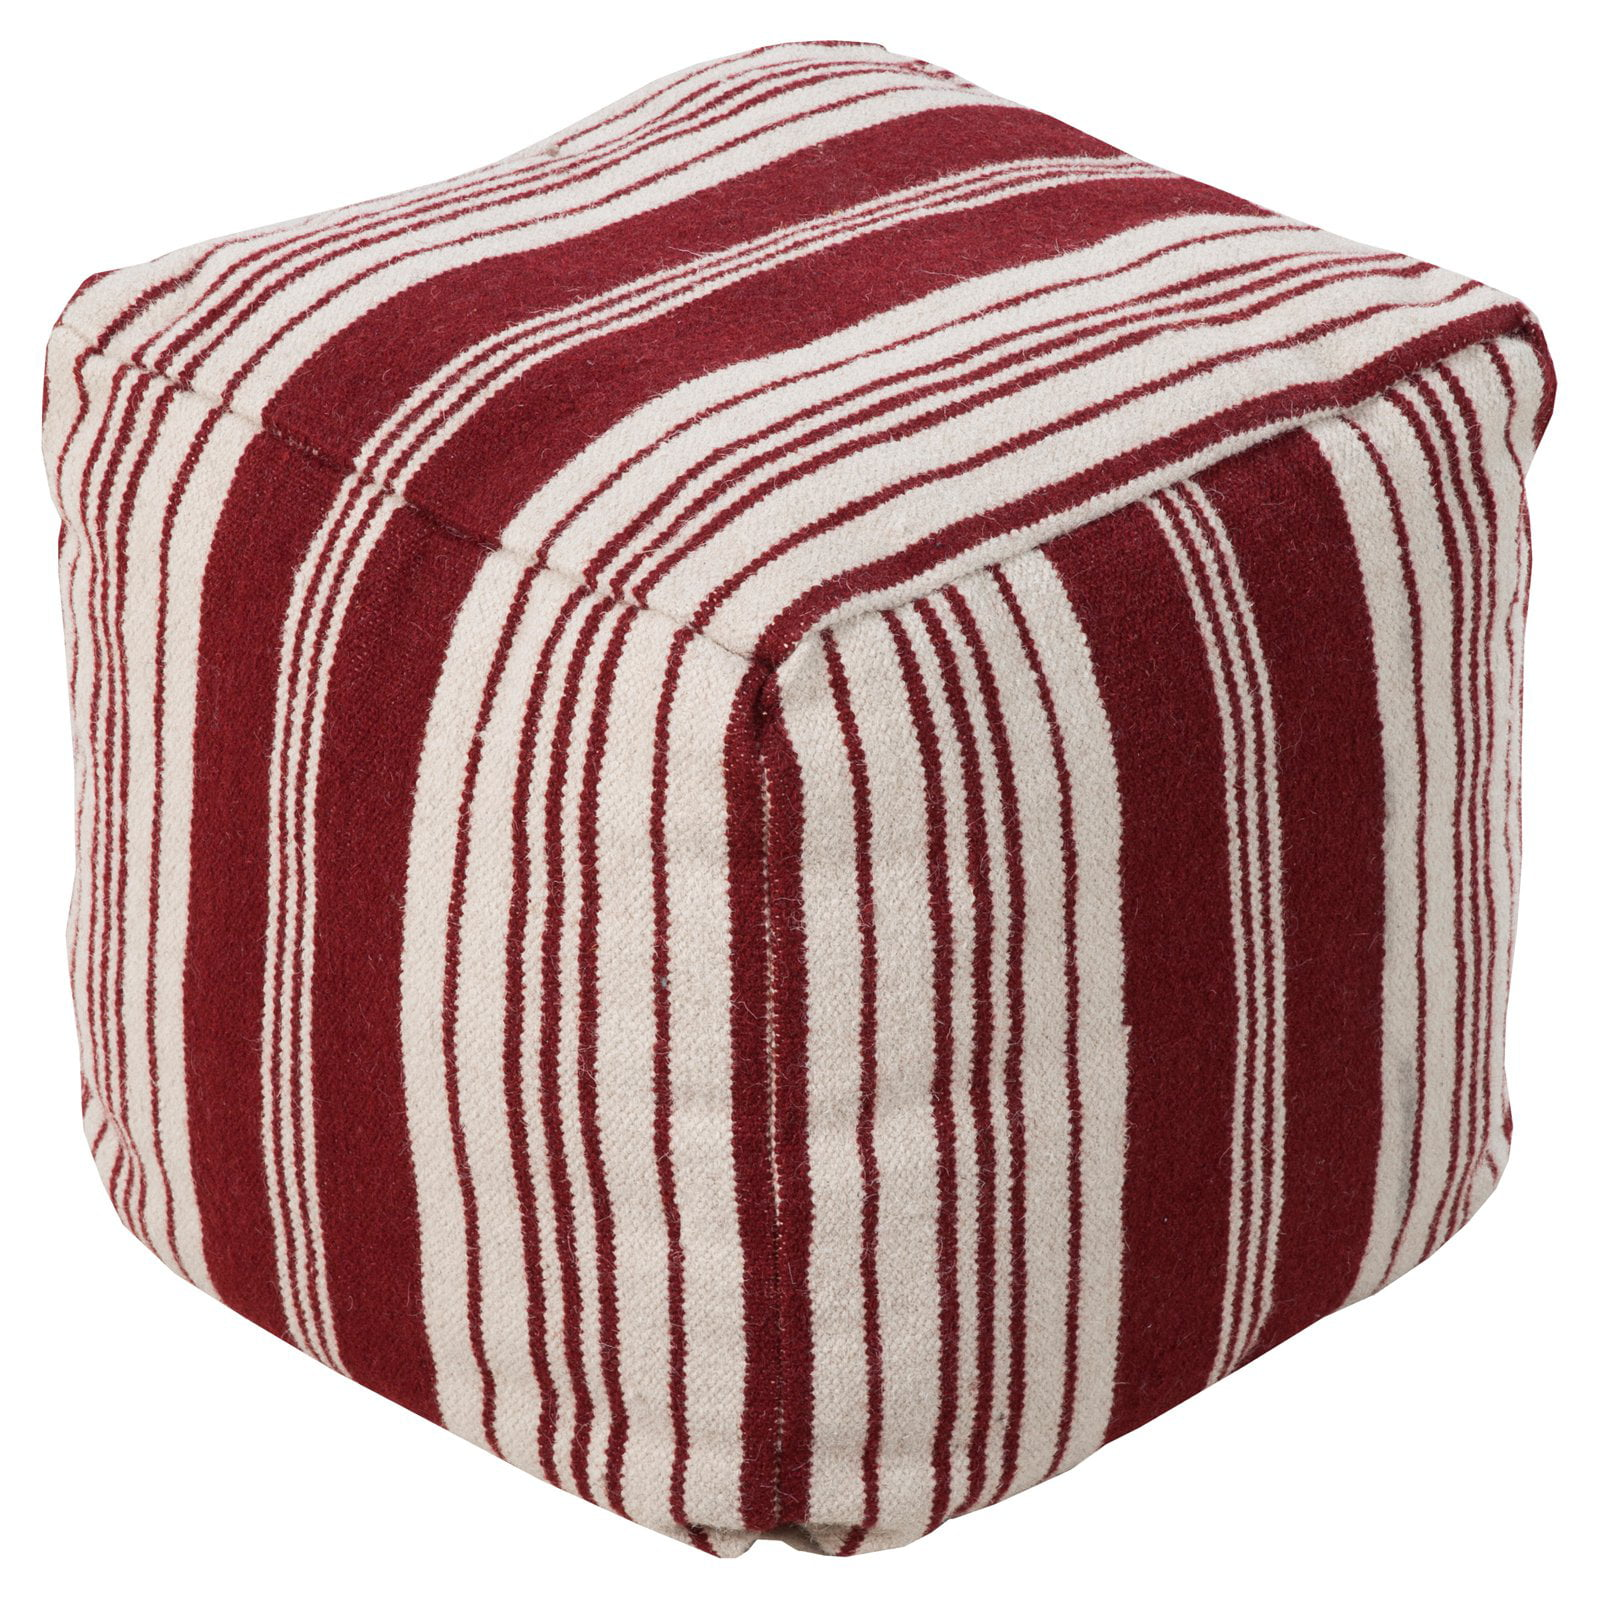 Surya 18 in. Cube Wool Pouf Carnelian   Antique White by Surya Rug